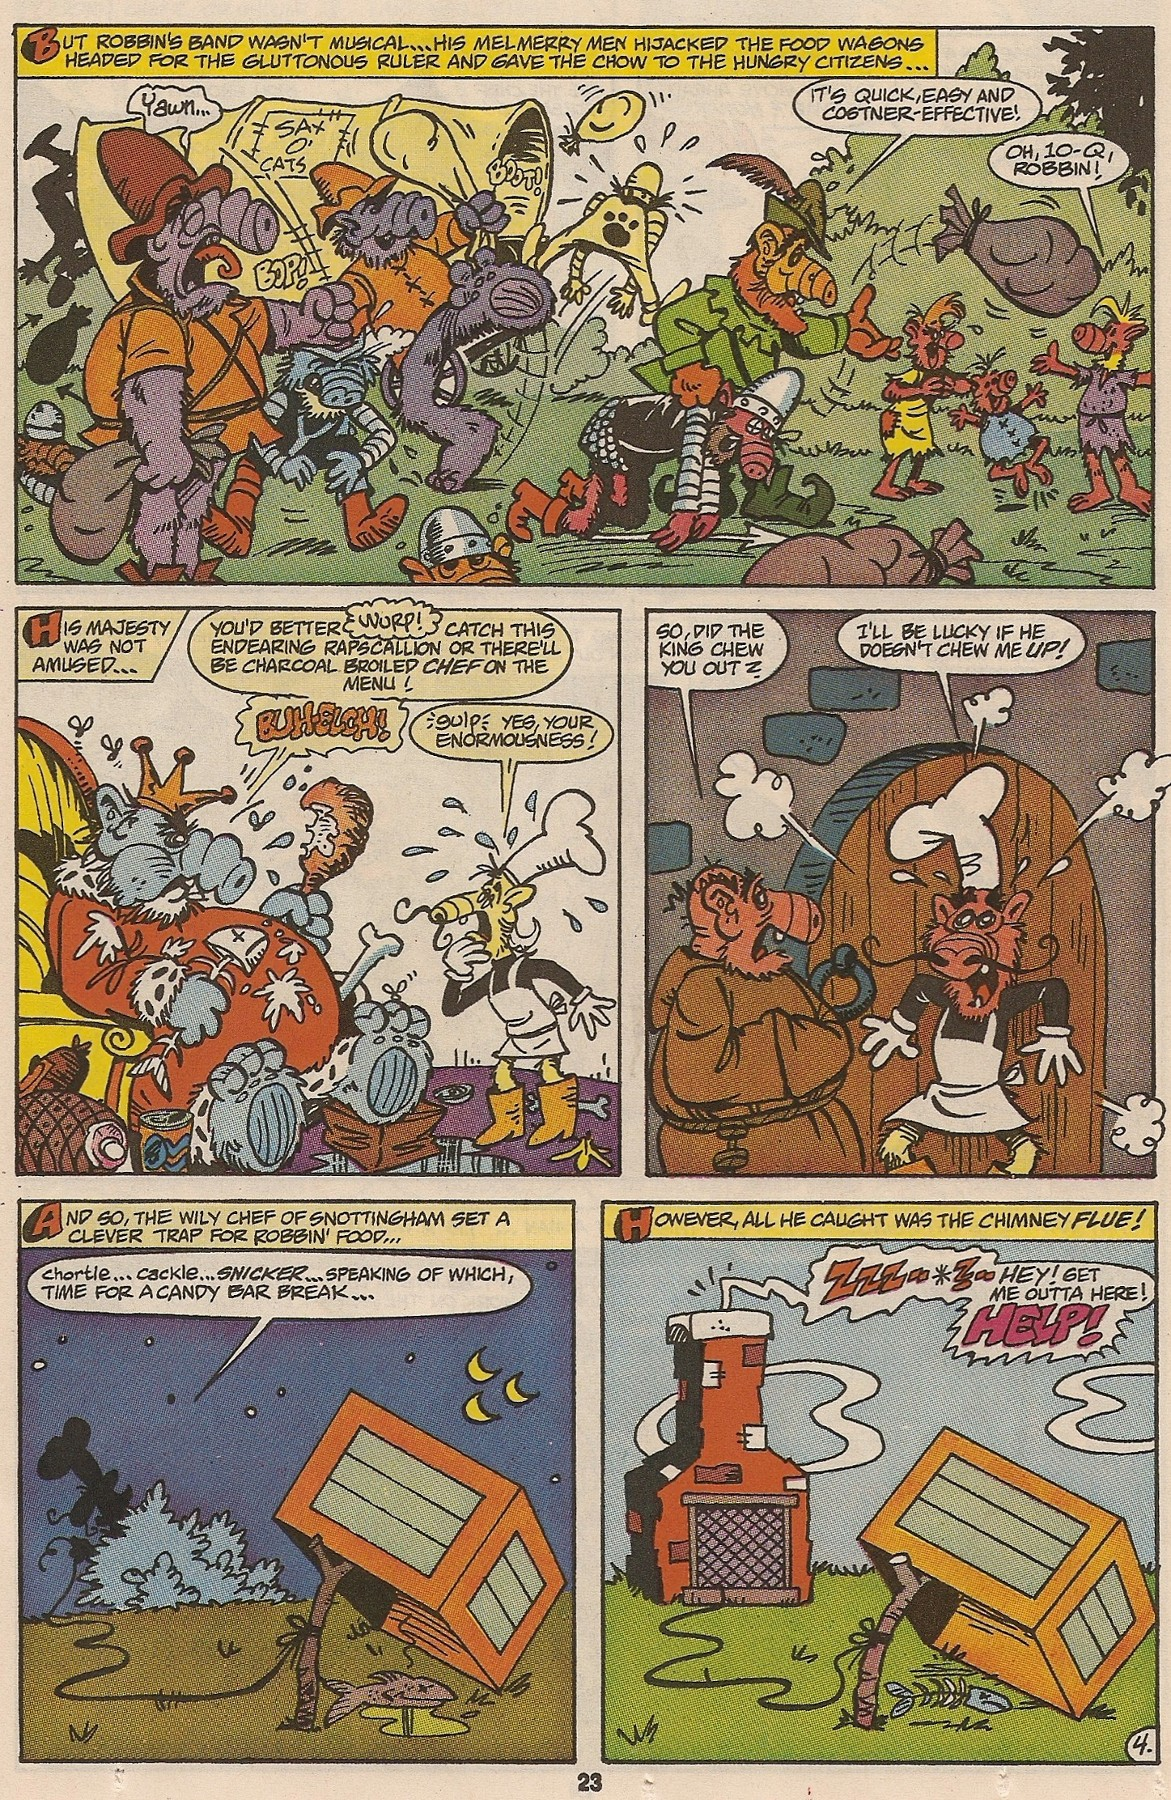 Read online ALF comic -  Issue #47 - 24